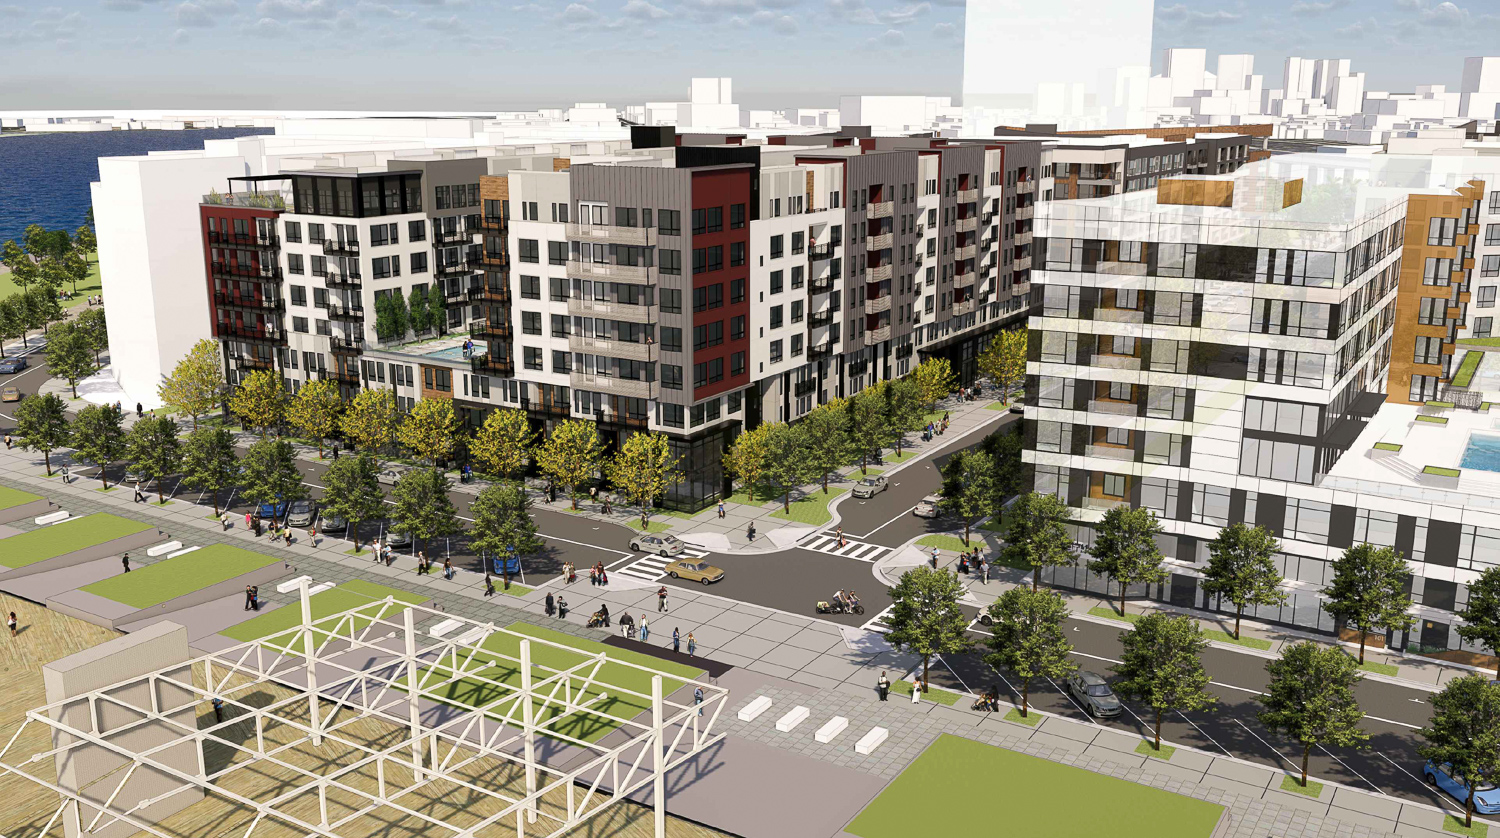 Brooklyn Basin Parcel D at One Ninth Avenue across from the Shoreline Park, rendering of design by Architecture Design Collaborative